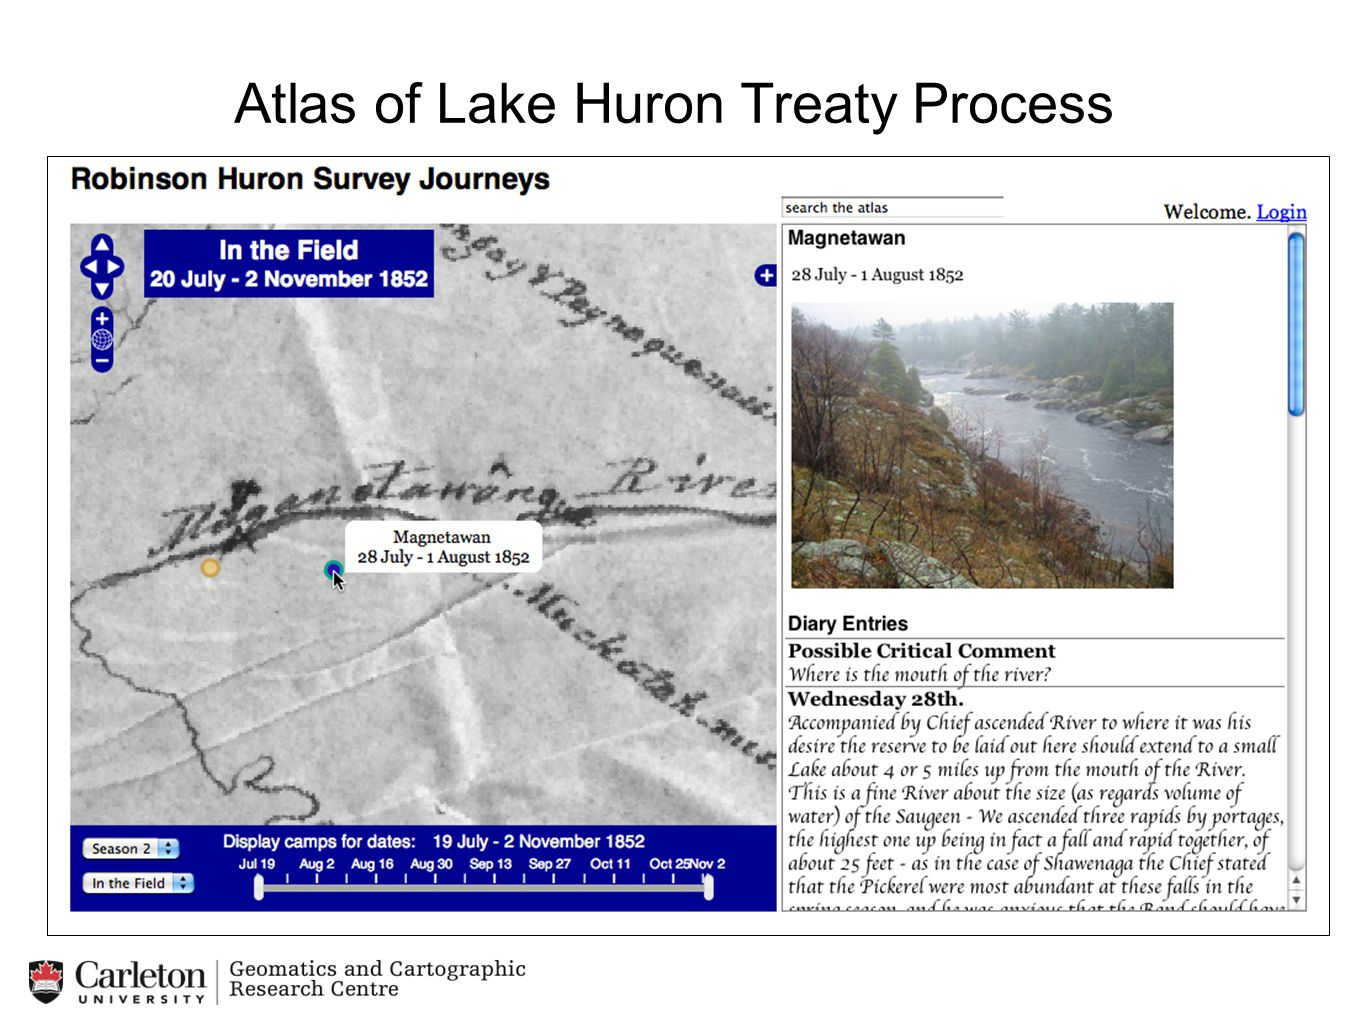 Atlas of Lake Huron Treaty Process